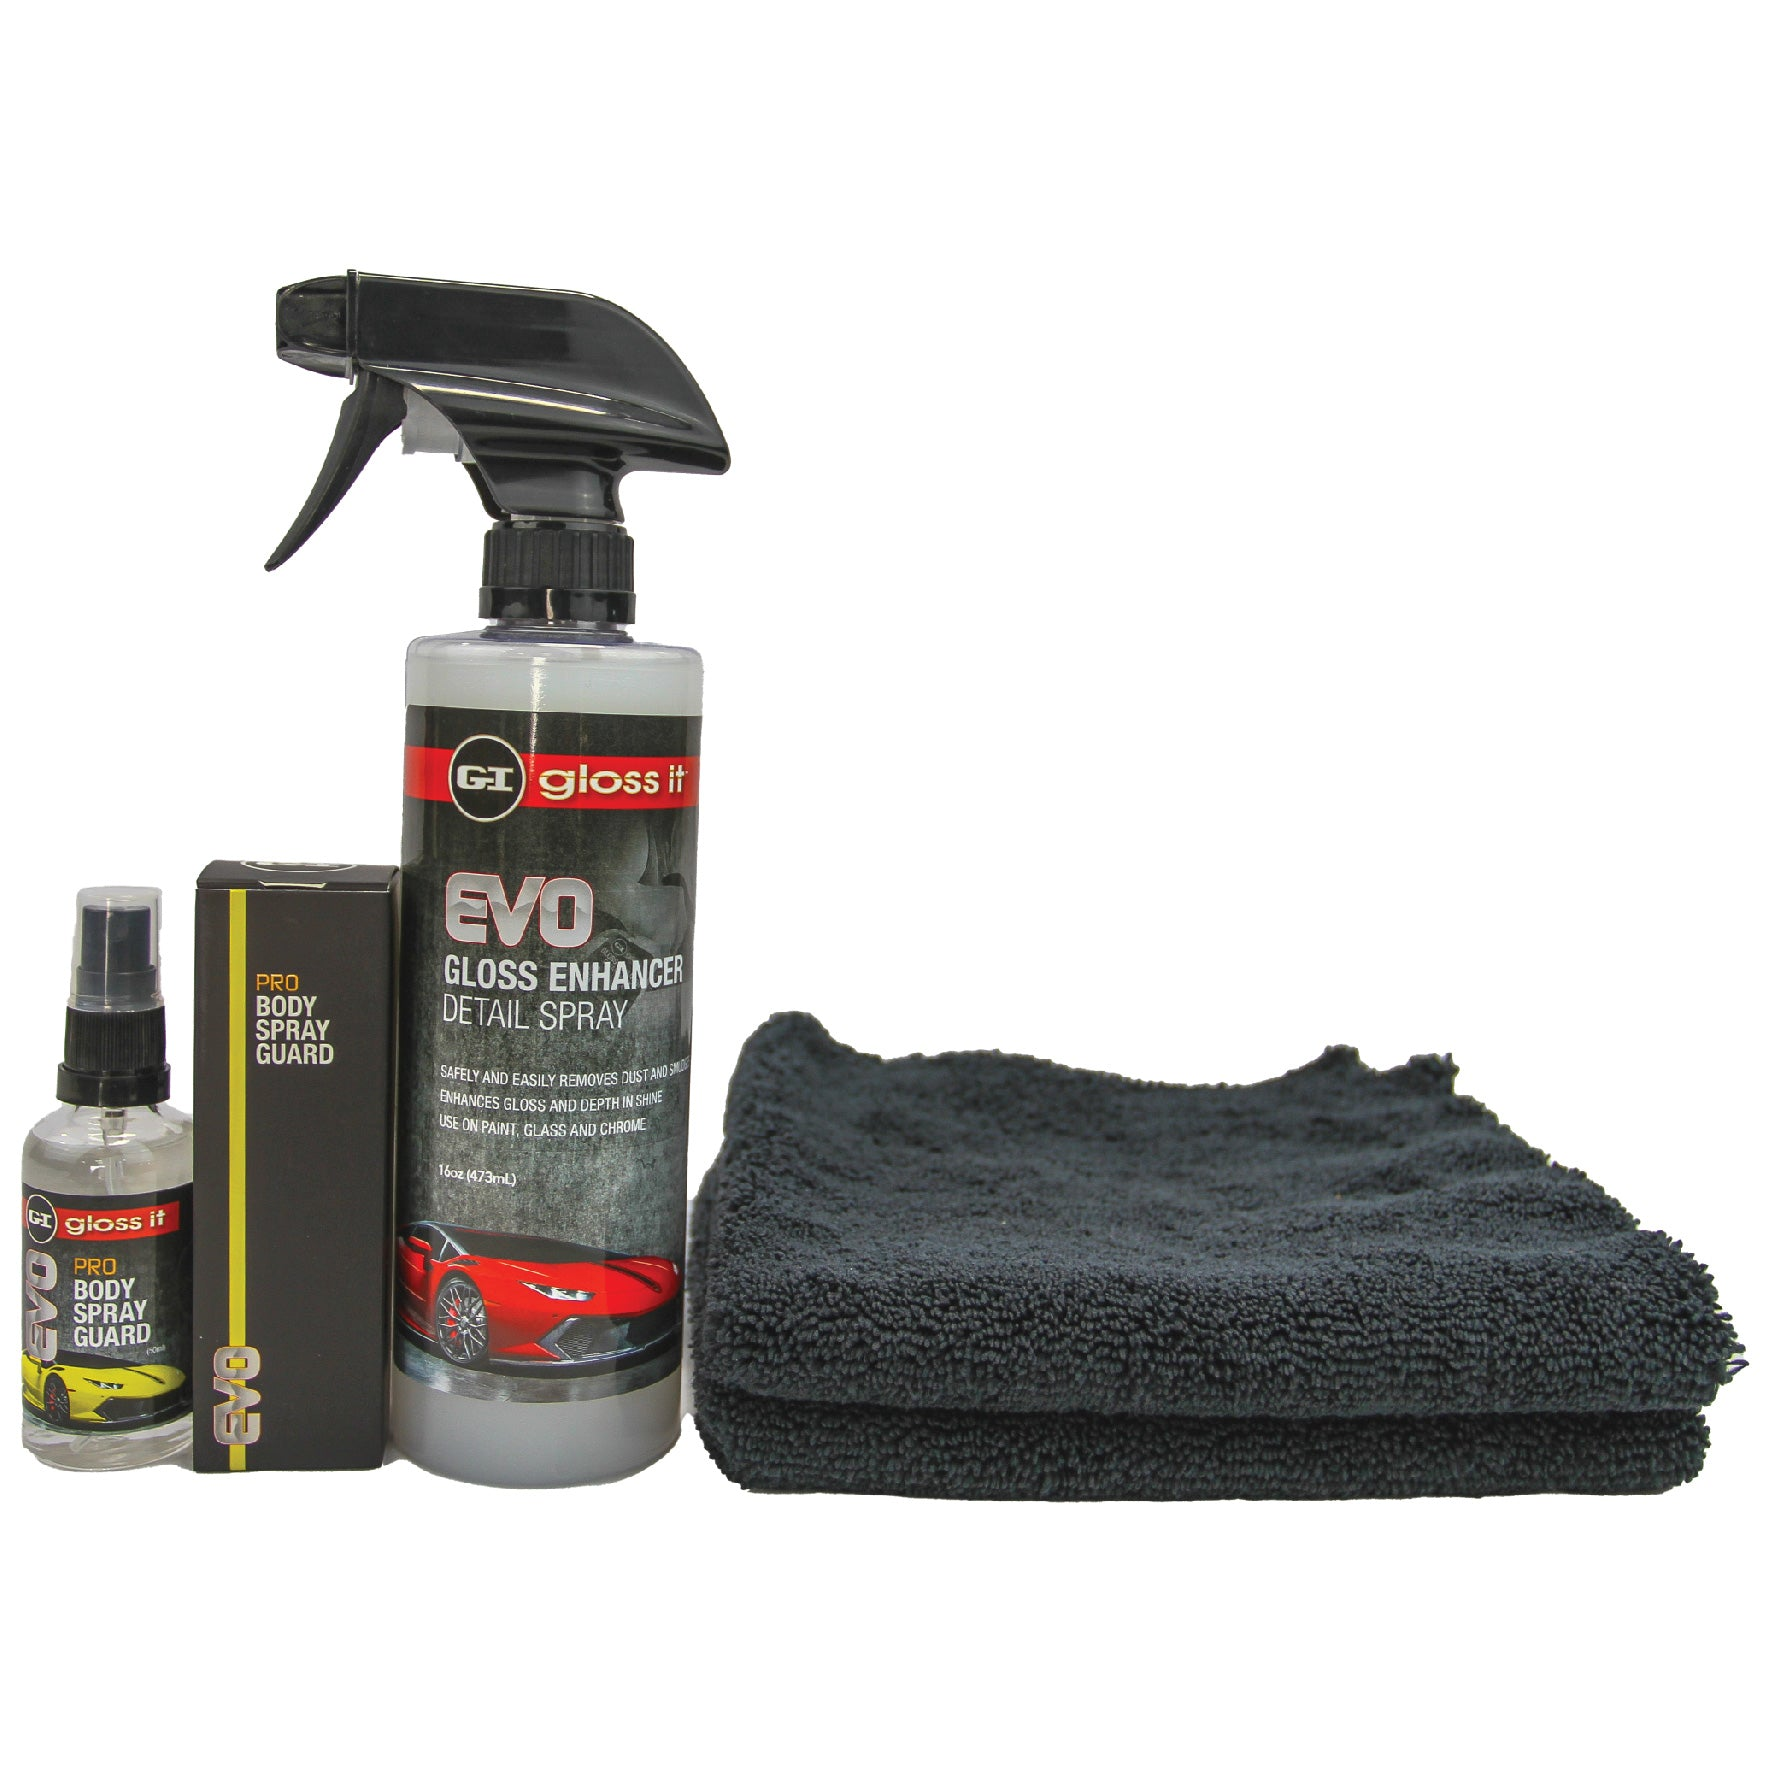 EVO PRO Body Guard Bundle